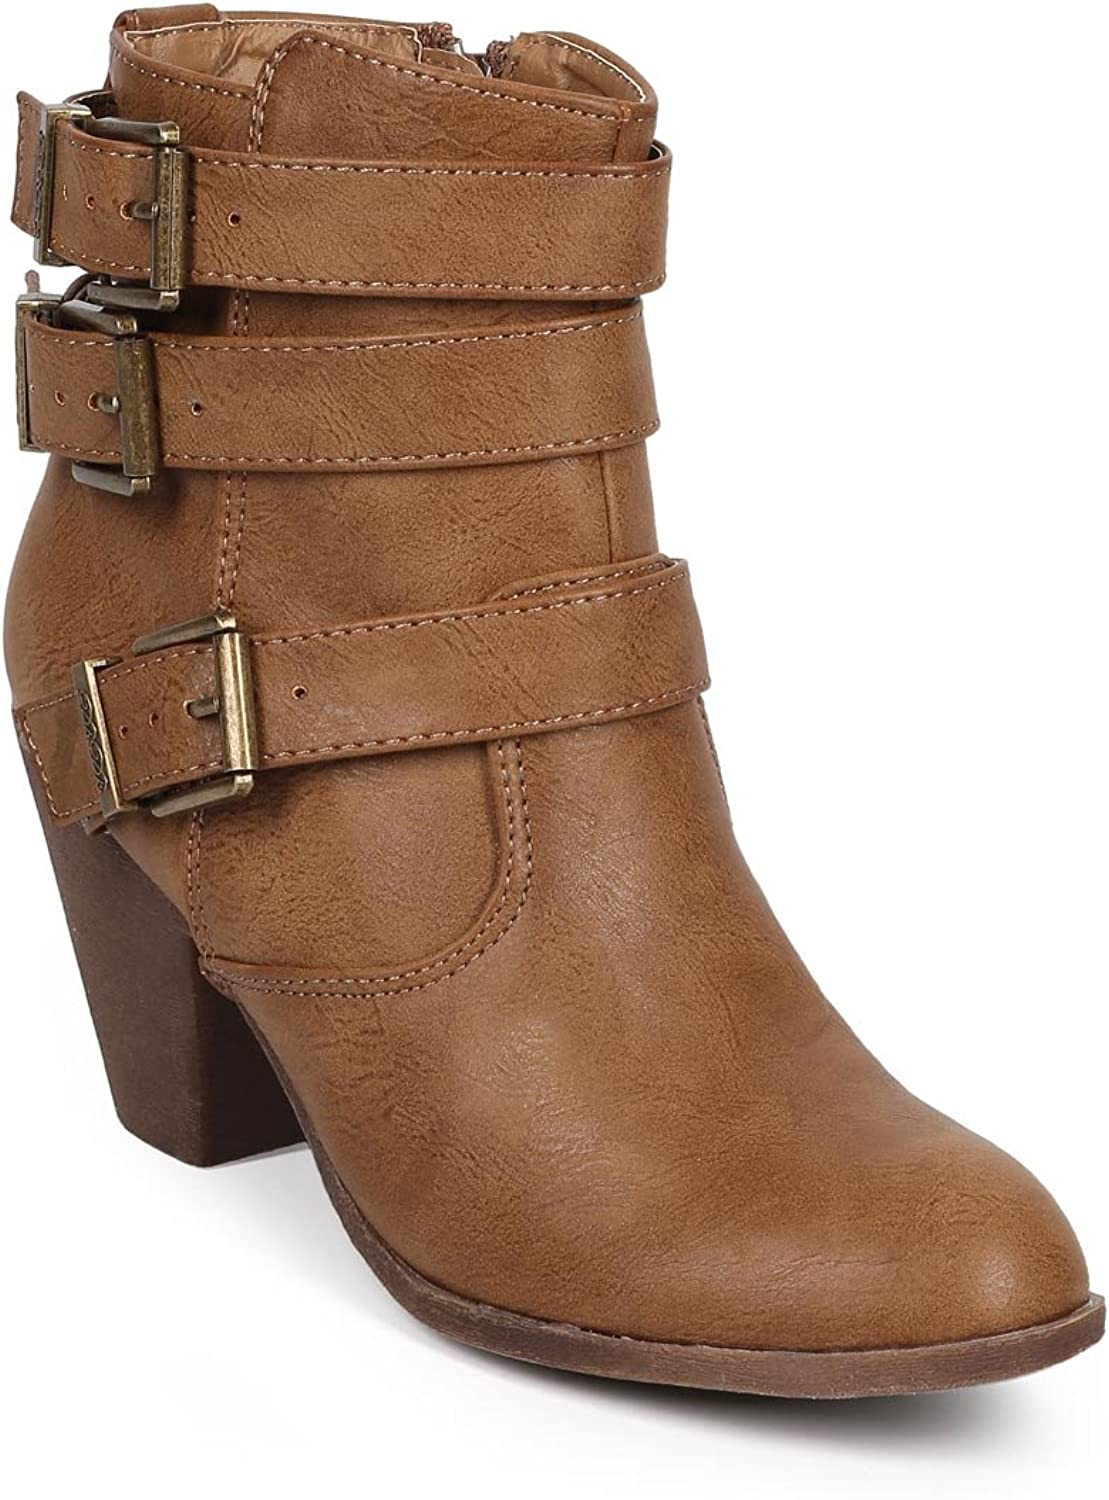 DBDK DK87 Women Leatherette Almond Toe Strappy Zip Riding Bootie - Taupe